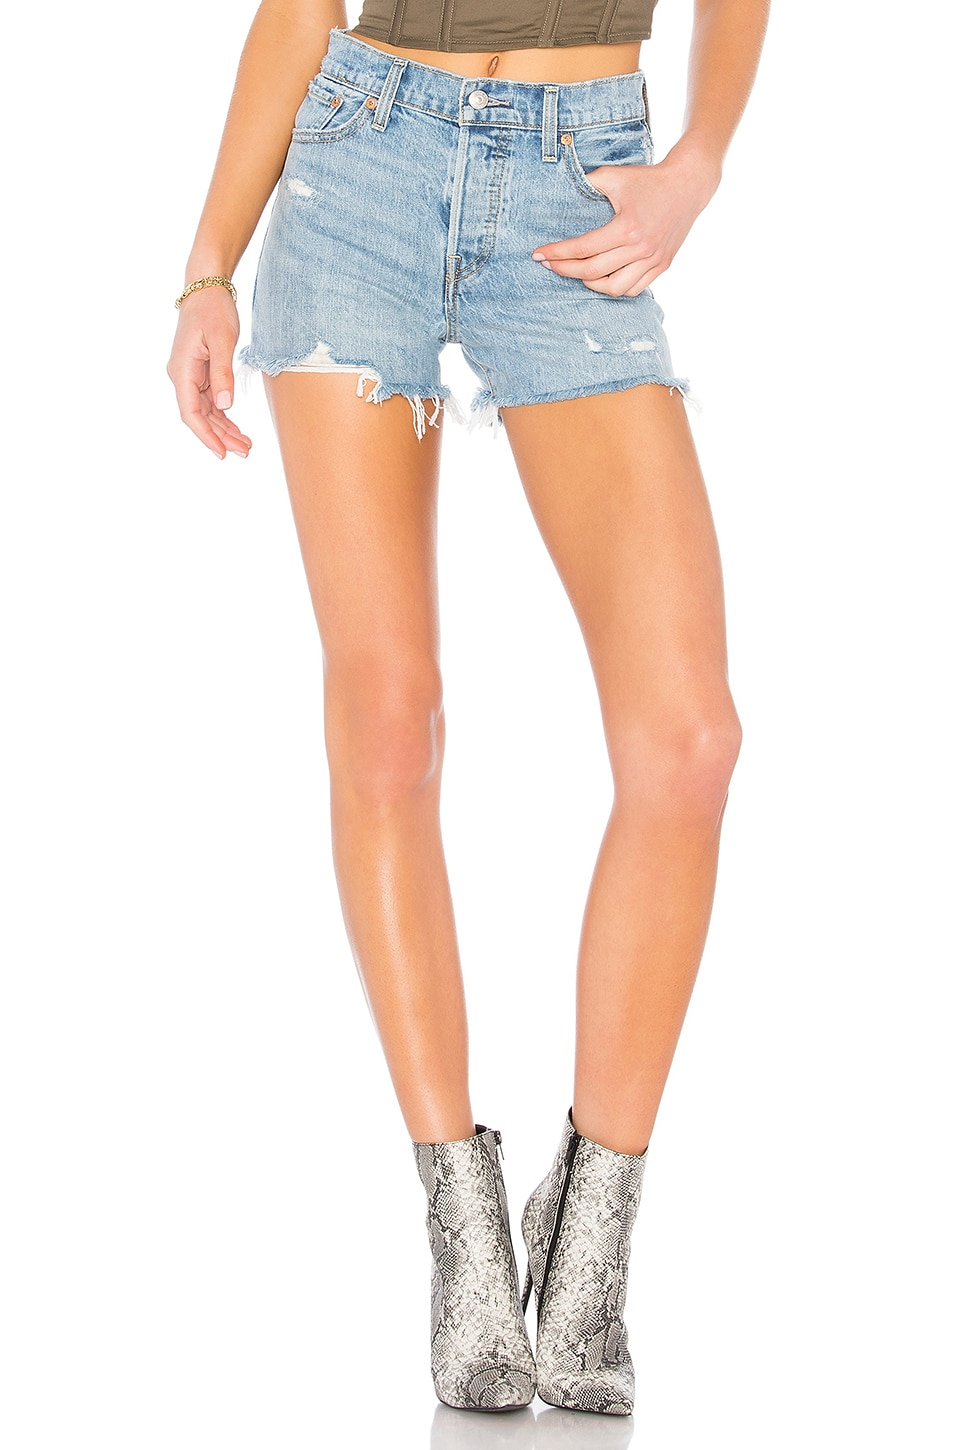 Wedgie Short                   LEVI'S                                                                                                                                                     Sale price:                                                                        CA$ 64.08                                                                                                  Previous price:                                                                       CA$ 128.16 10